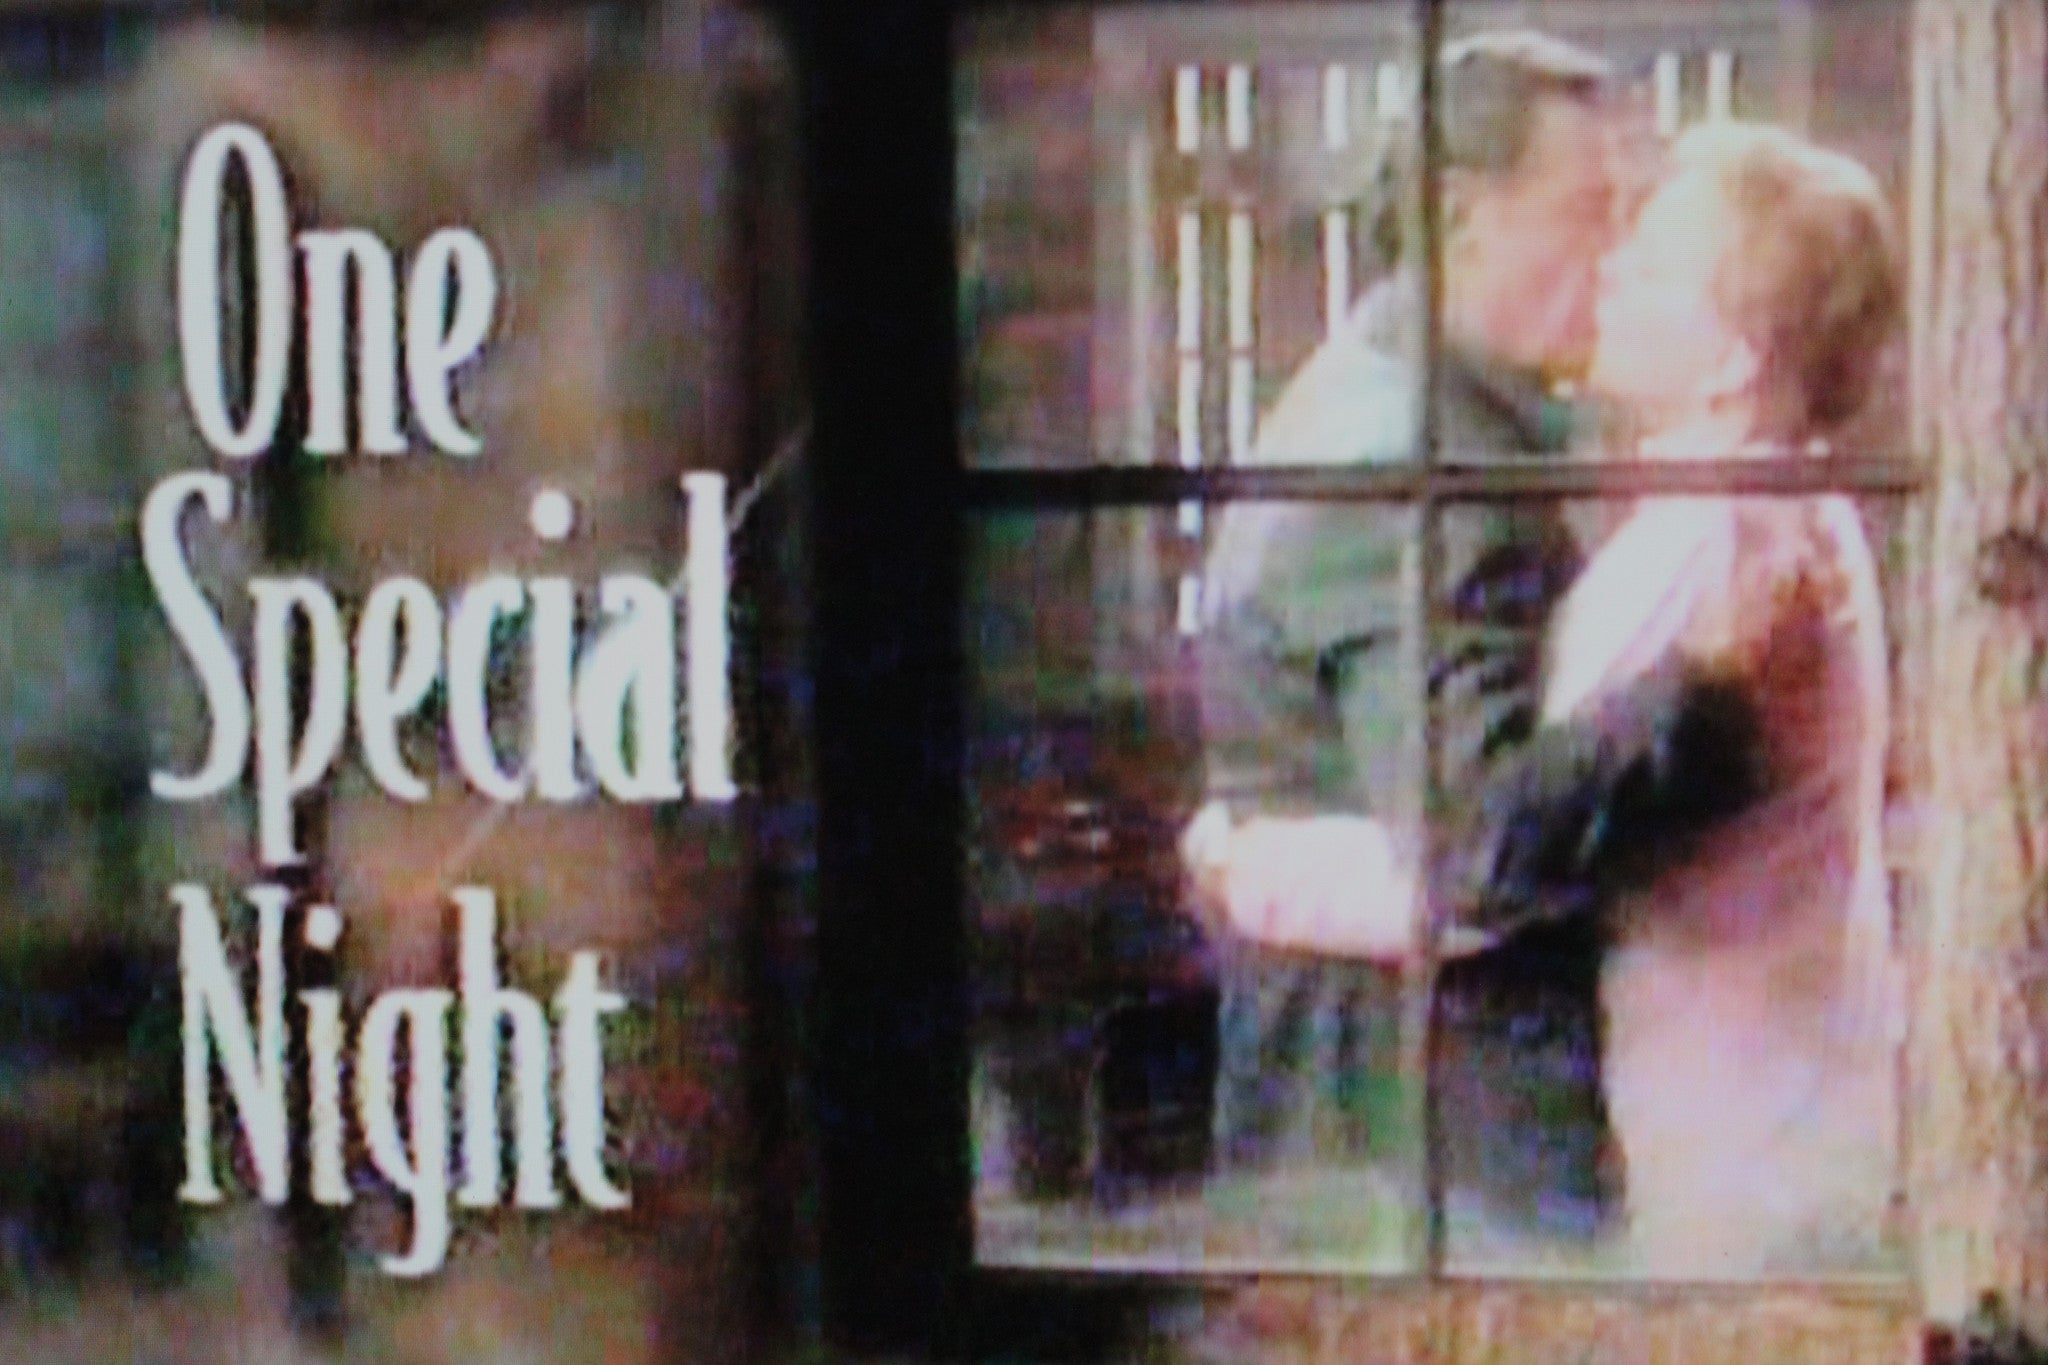 ONE SPECIAL NIGHT (CBS-TVM 11/28/99) - Rewatch Classic TV - 1